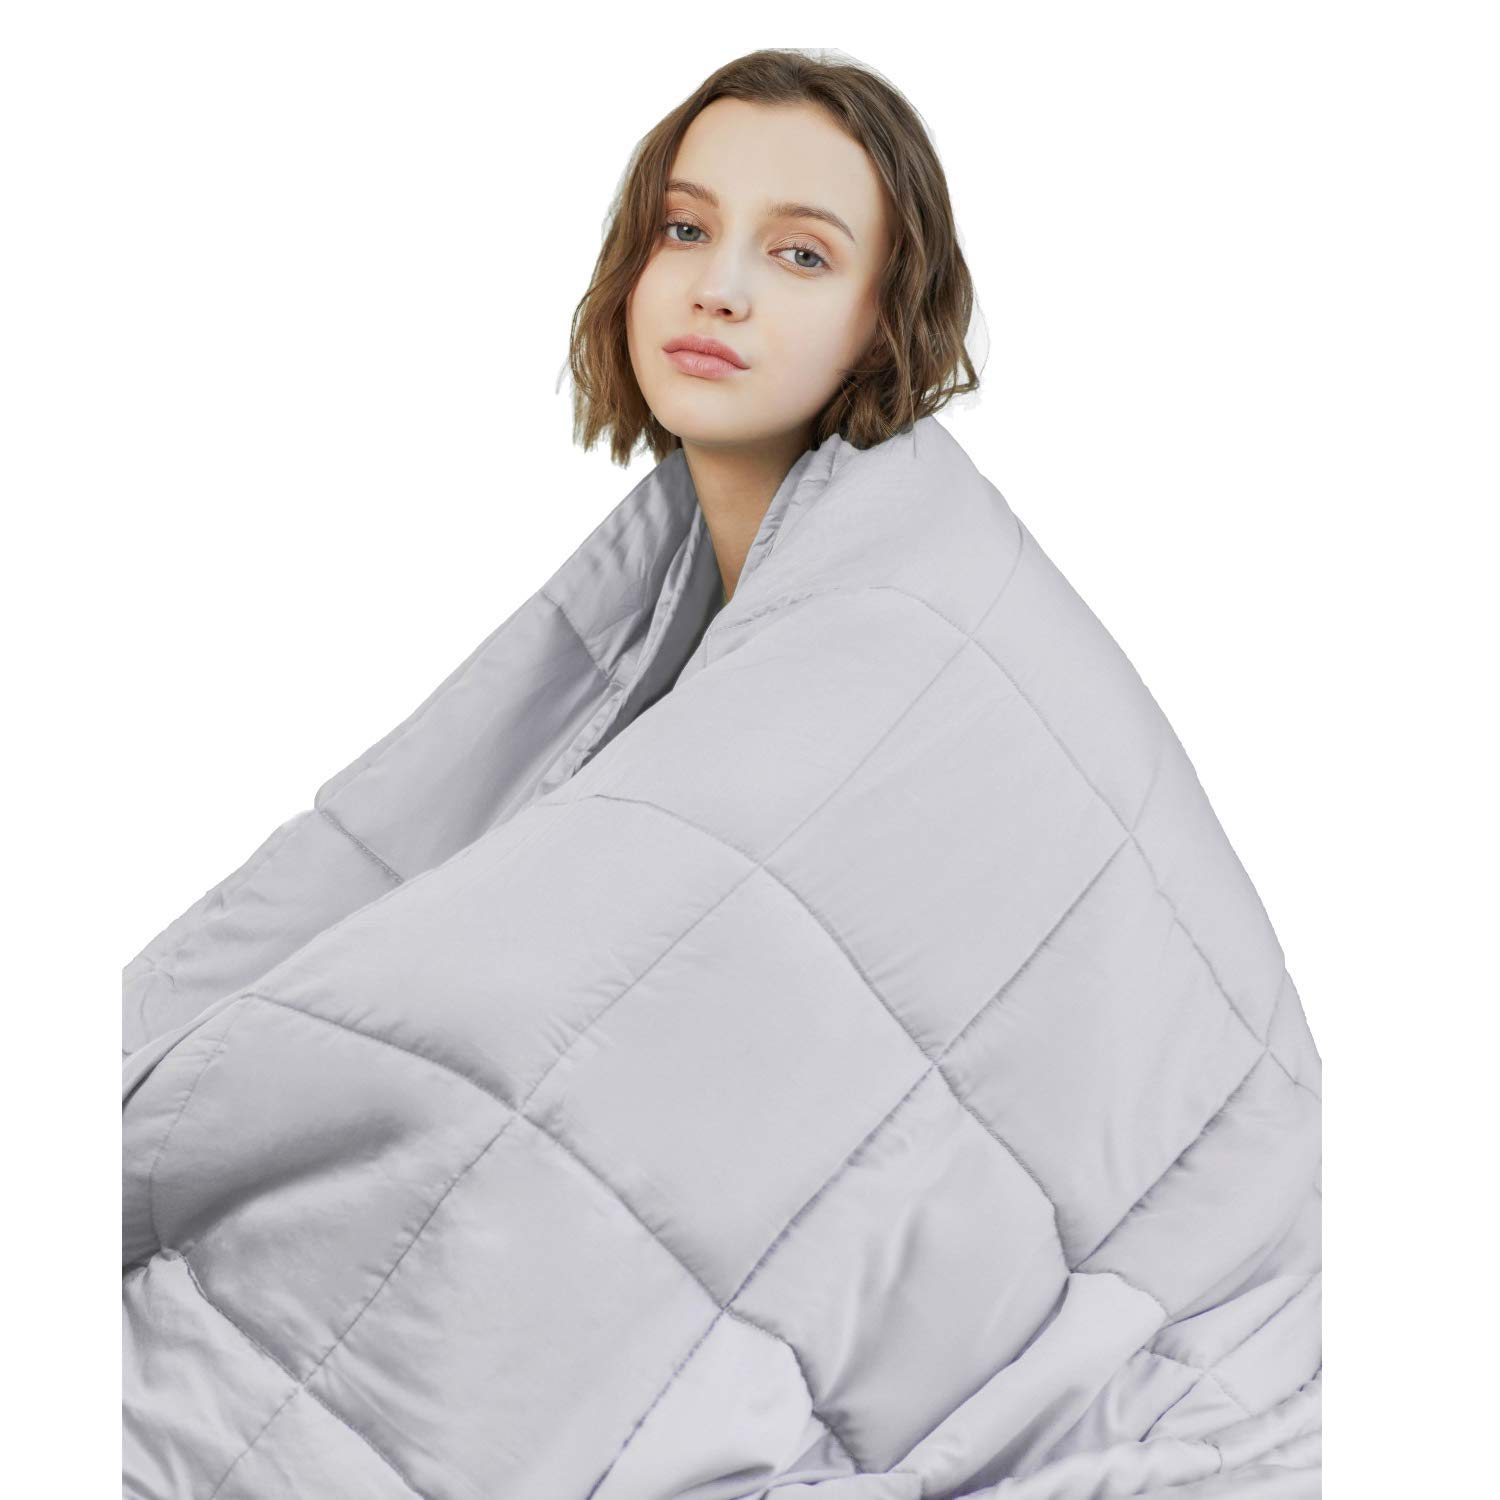 YnM weighted and calming blanket Australia